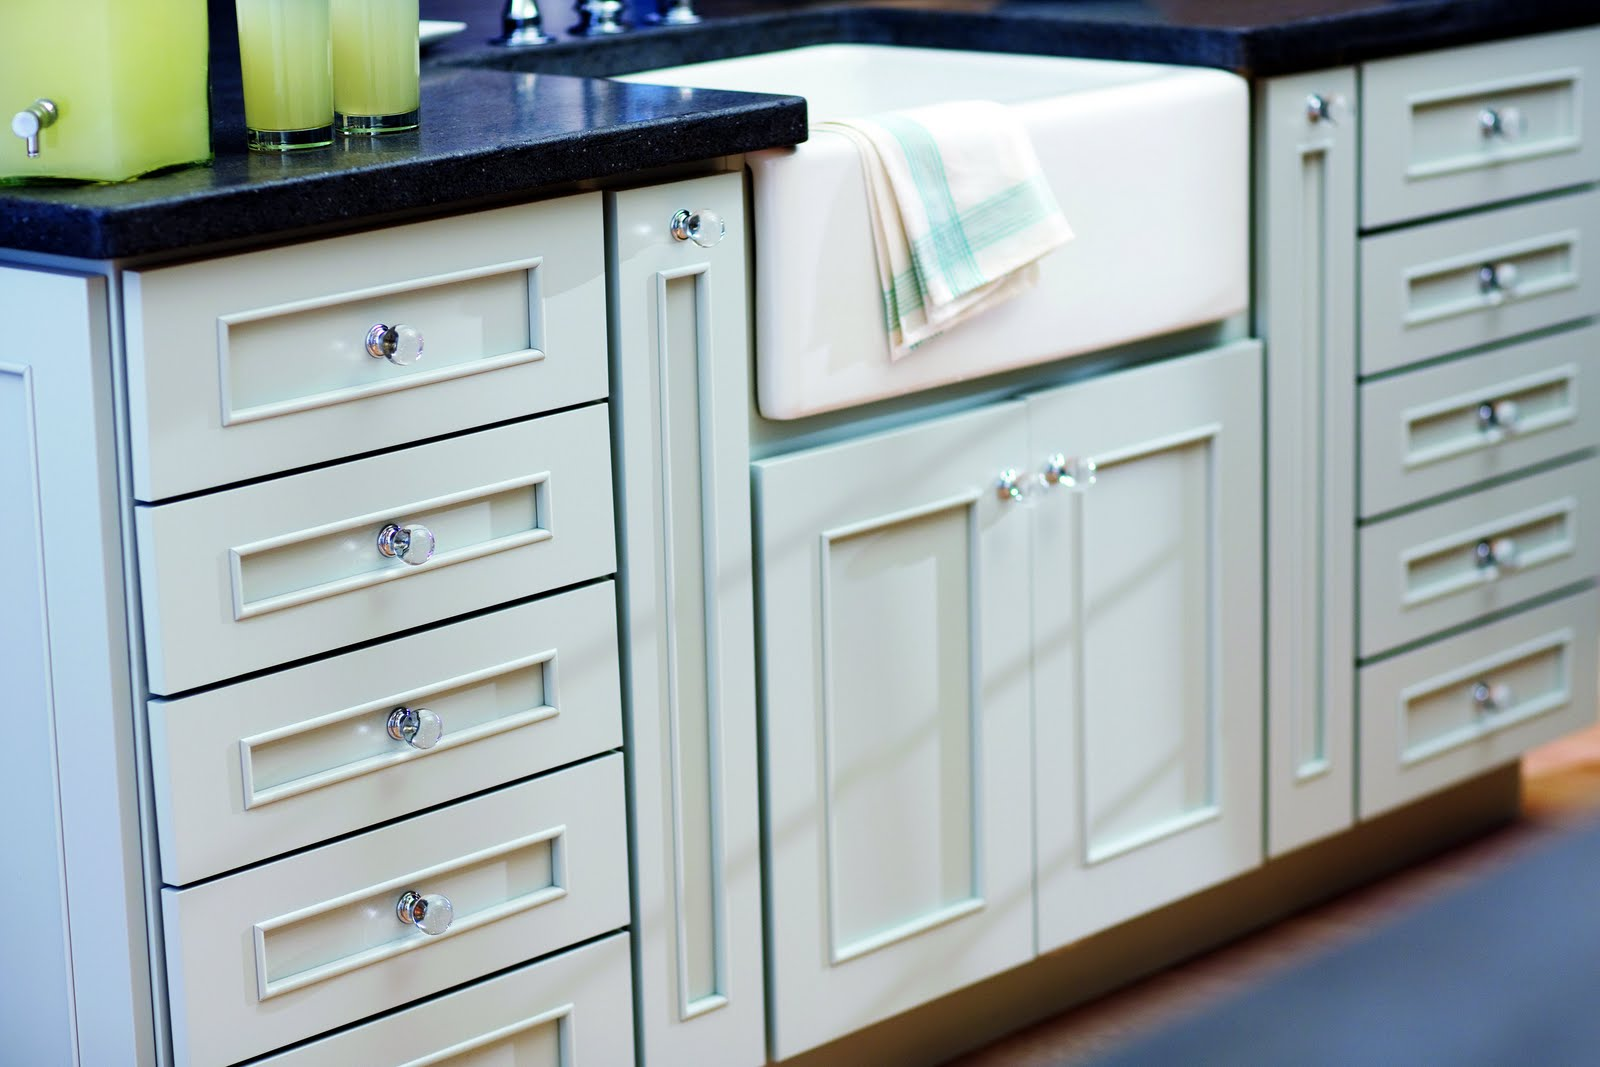 Small Glass Kitchen Cabinet Knobs on White Cabinets inside Fascinating Kitchen with Dark Granite Countertop